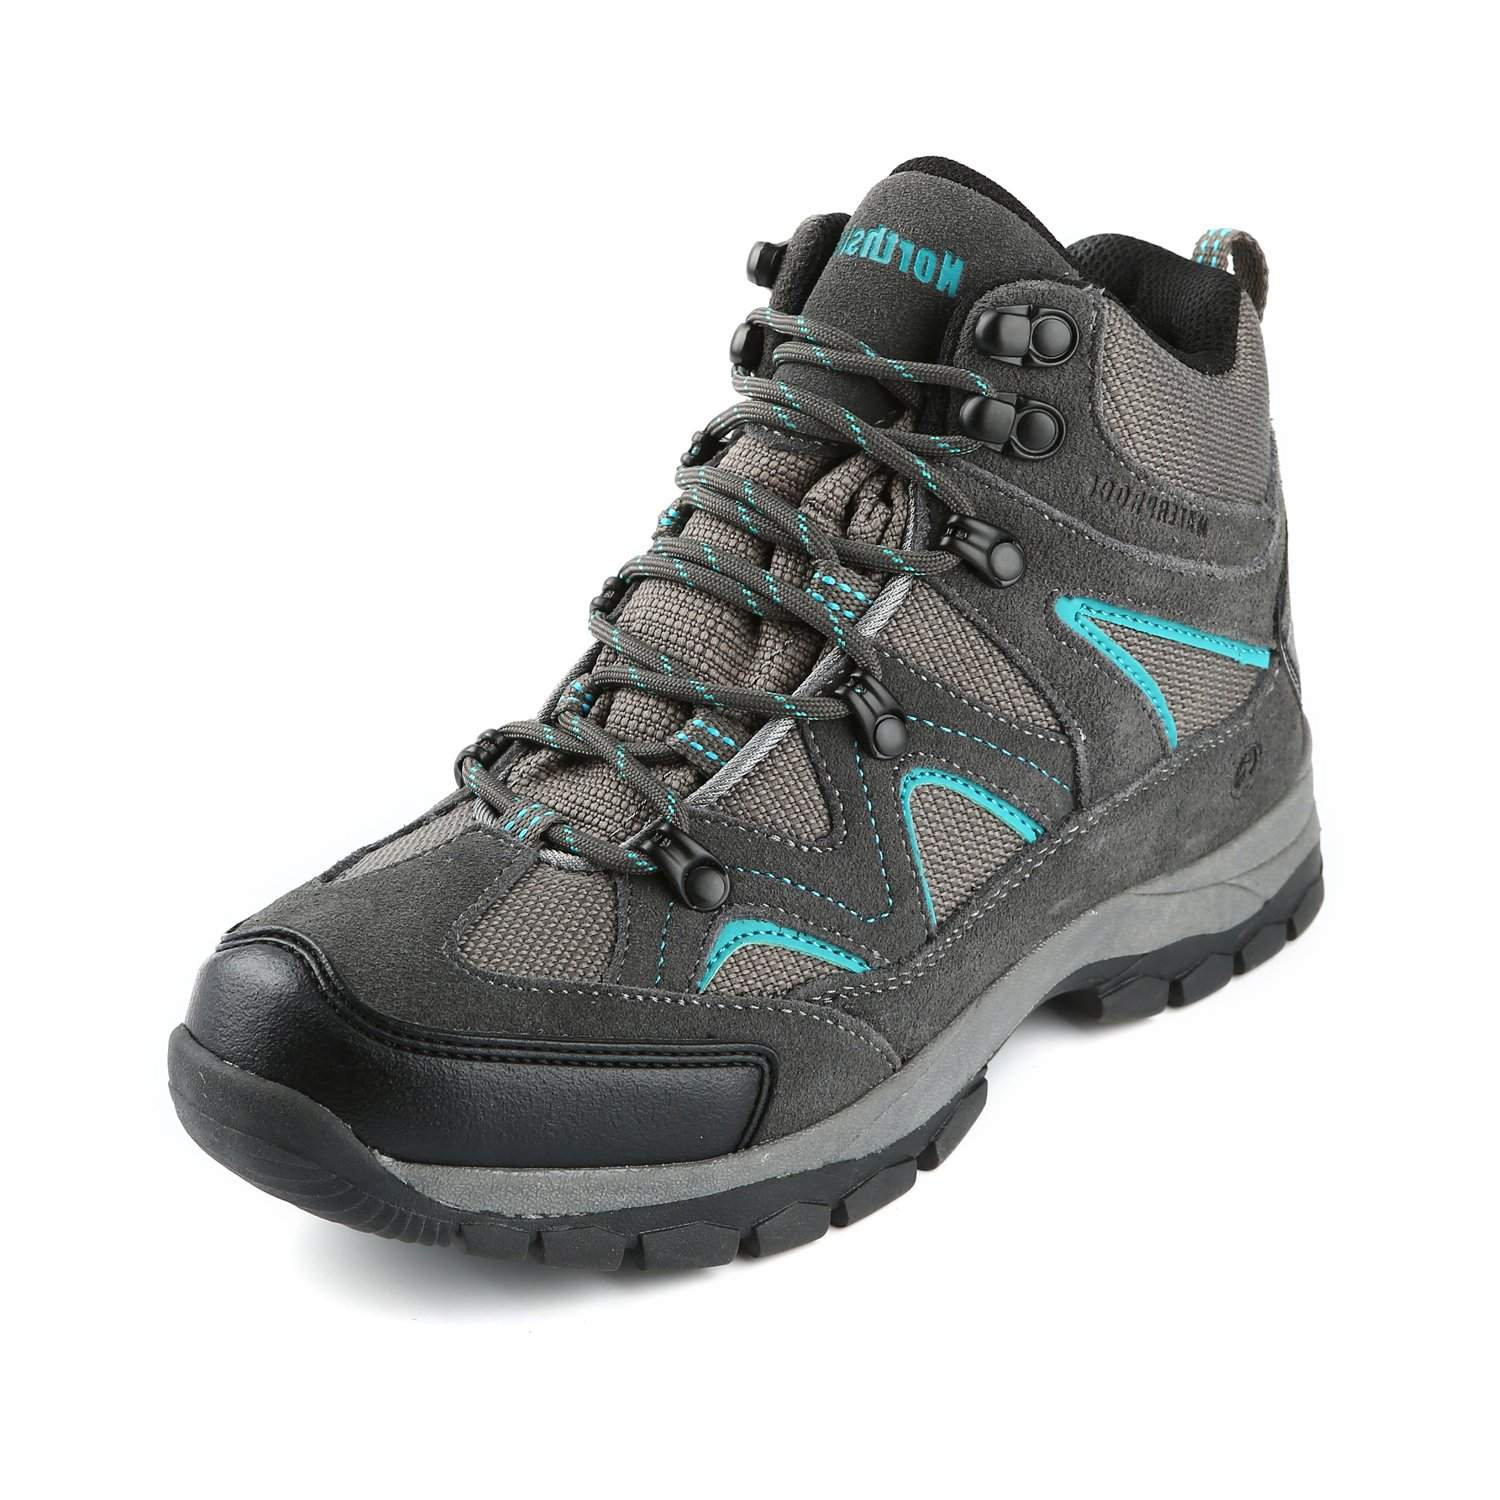 Northside Women's Snohomish Hiking Boot, Dk Gray/Dk Turquoise, 8.5 B(M) US